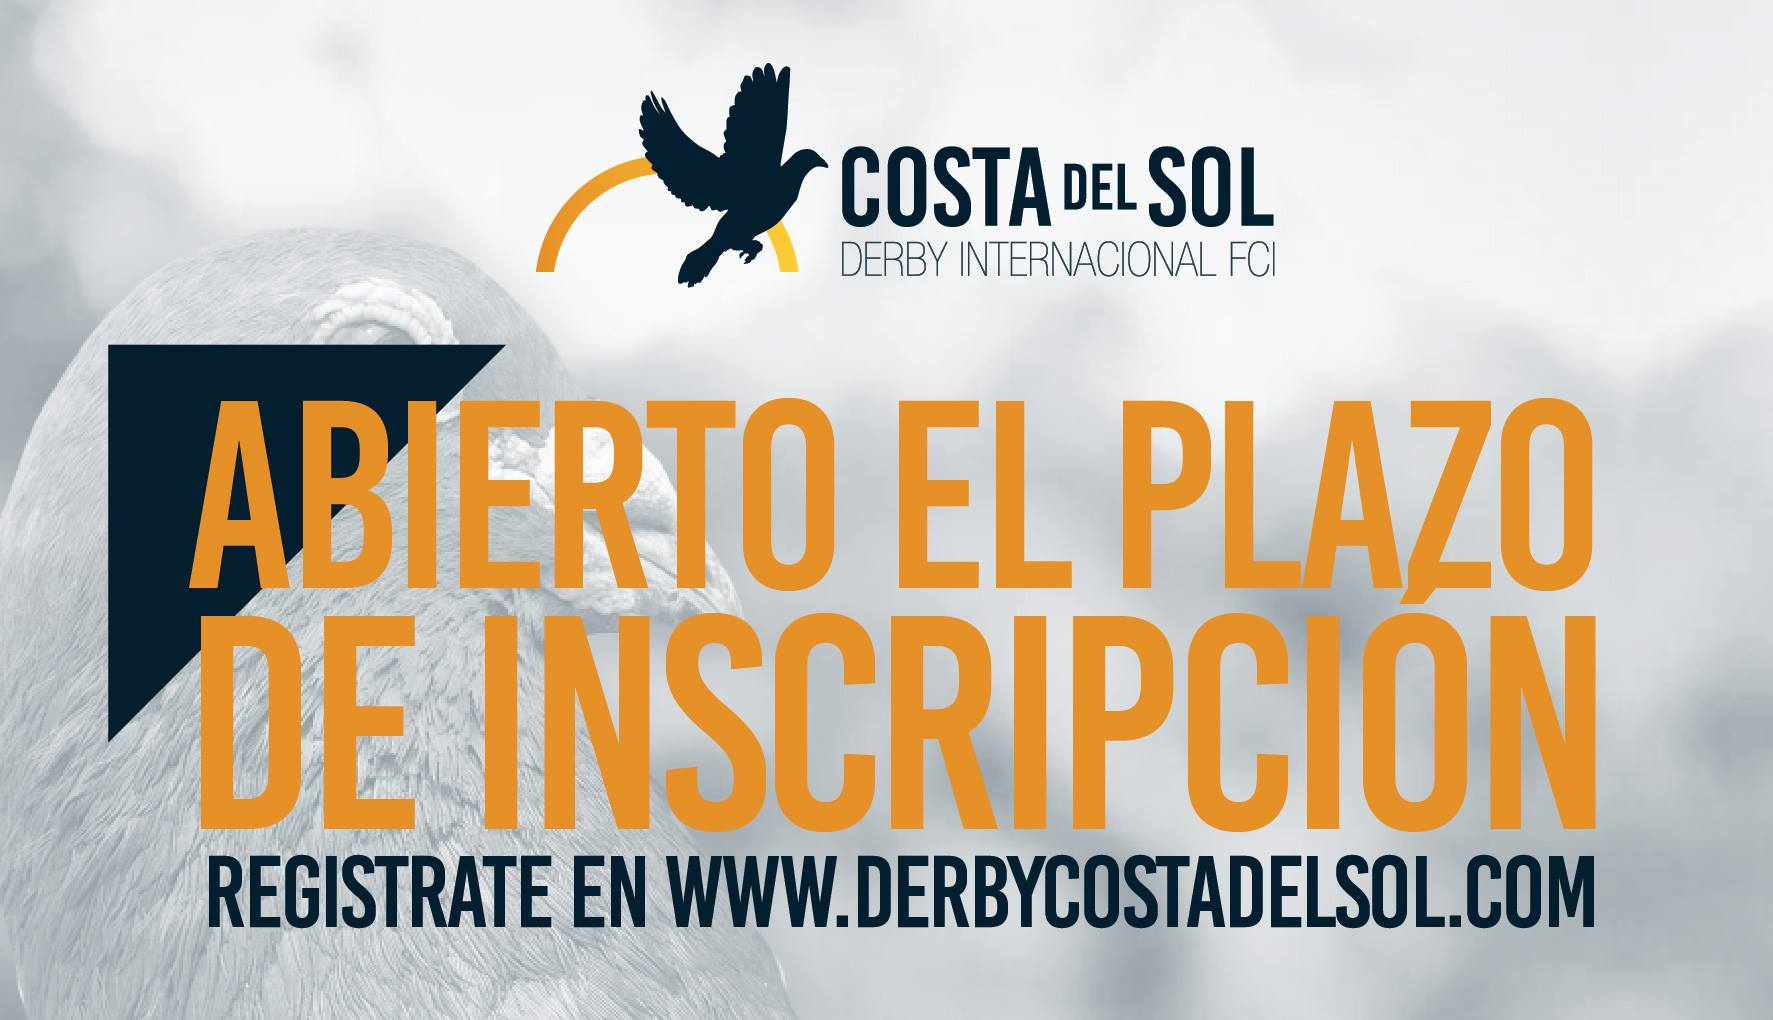 OPENING THE REGISTRATION PERIOD FOR THE 7TH EDITION OF THE COSTA DEL SOL